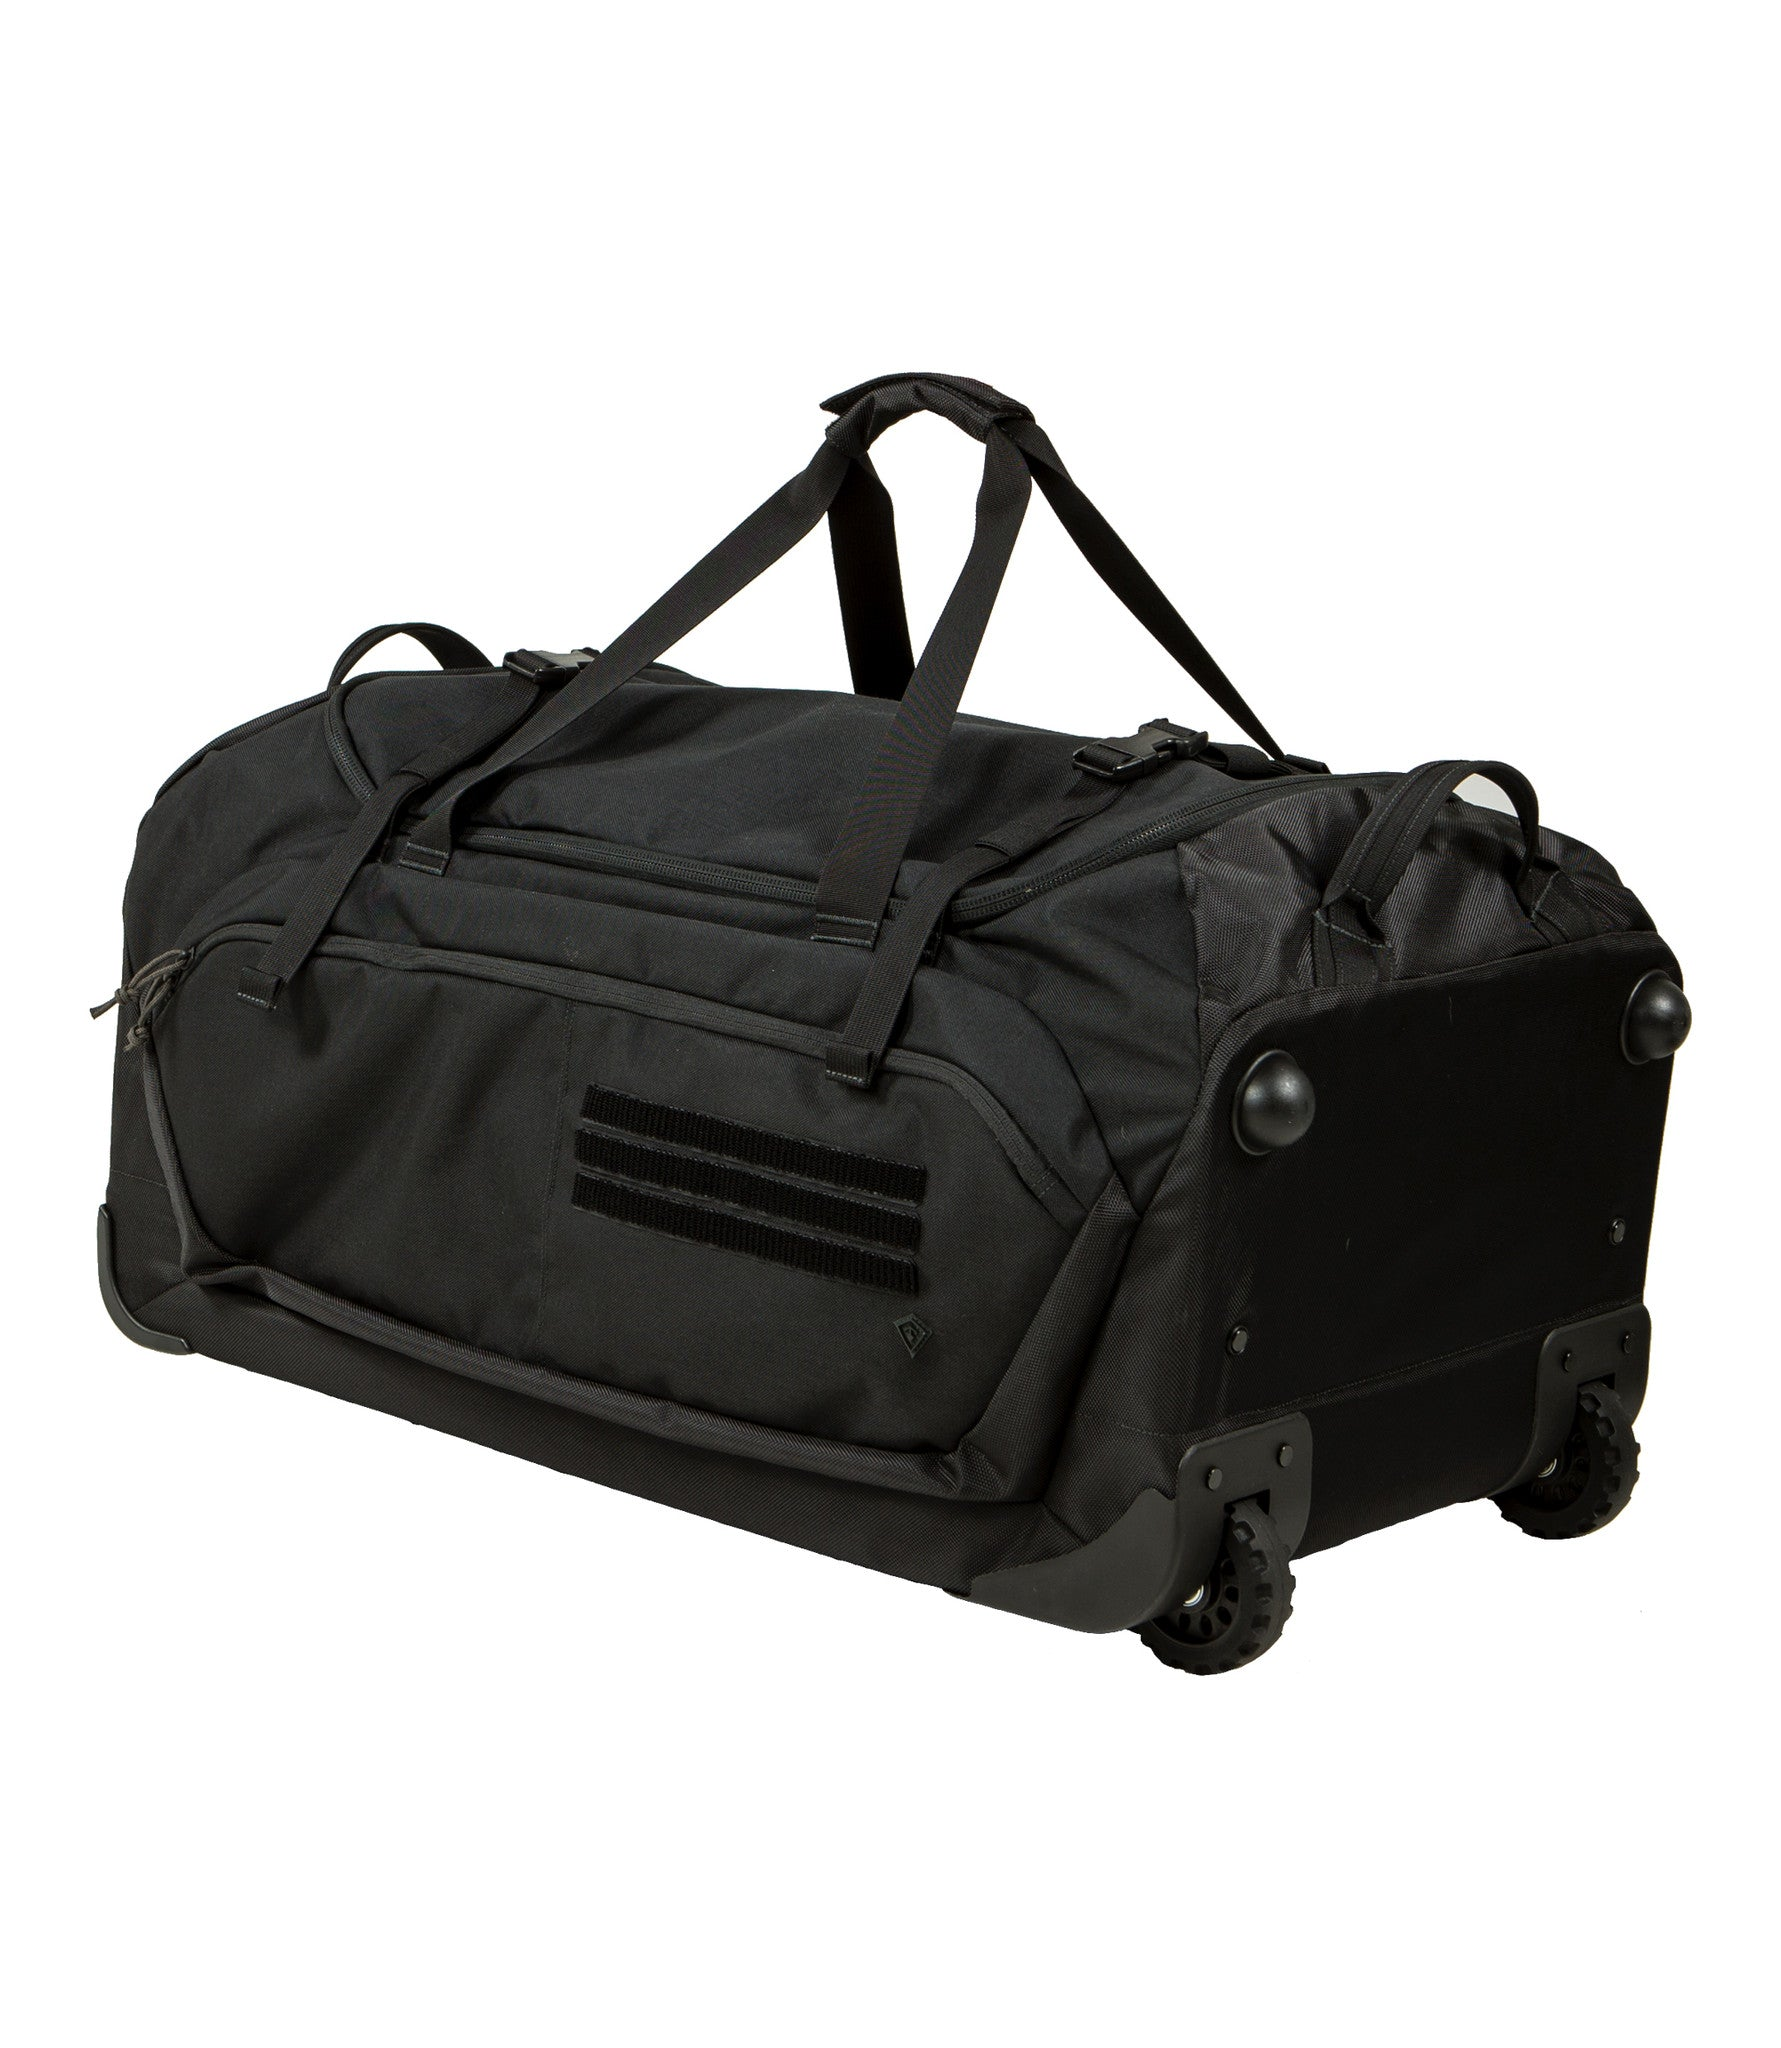 a45e68fd1 Competitor Price: Specialist Rolling Duffle ...